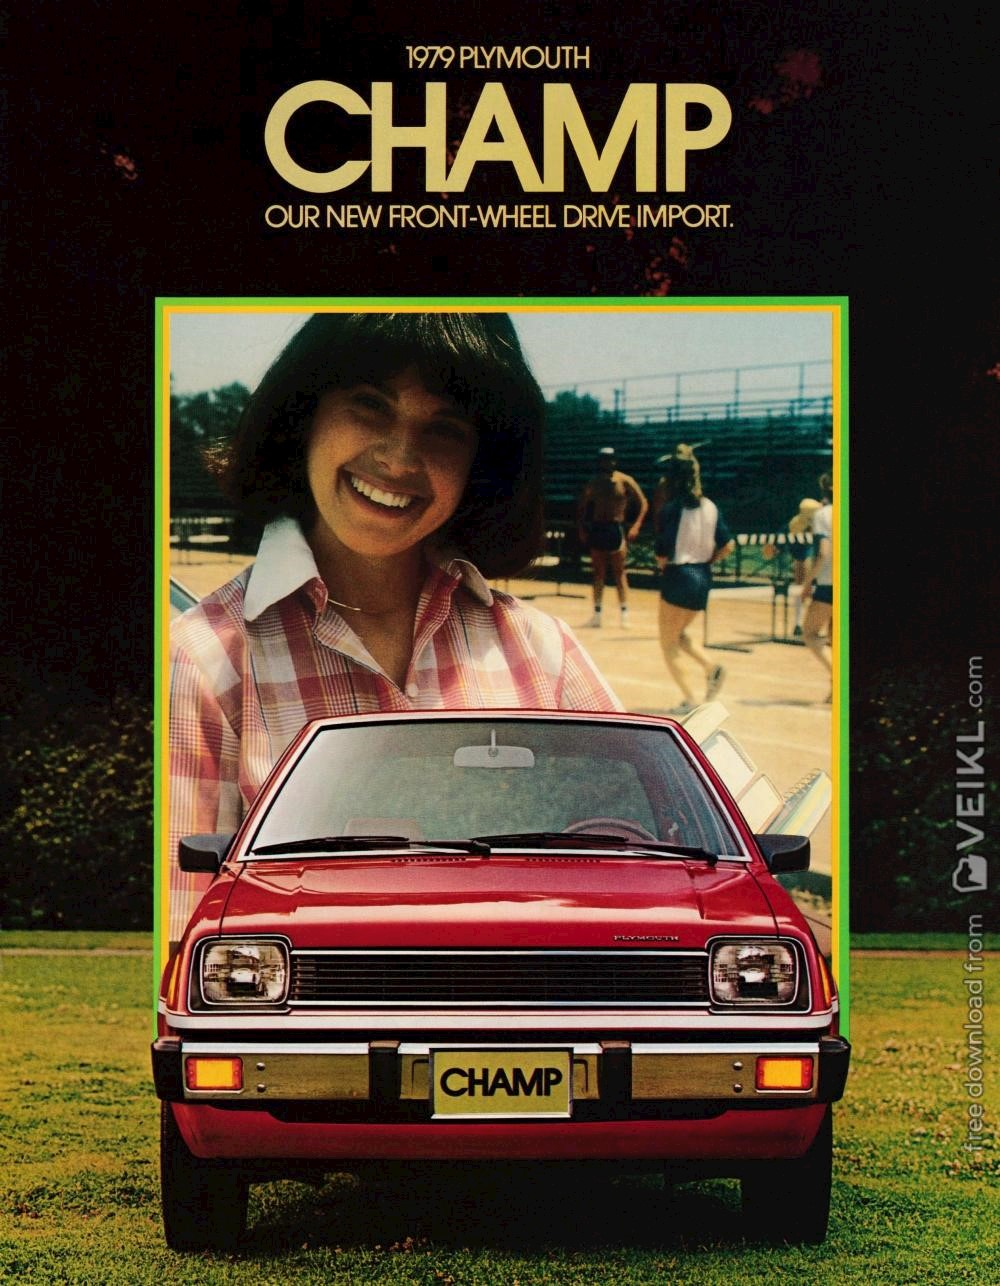 Plymouth Champ Brochure 1979 EN